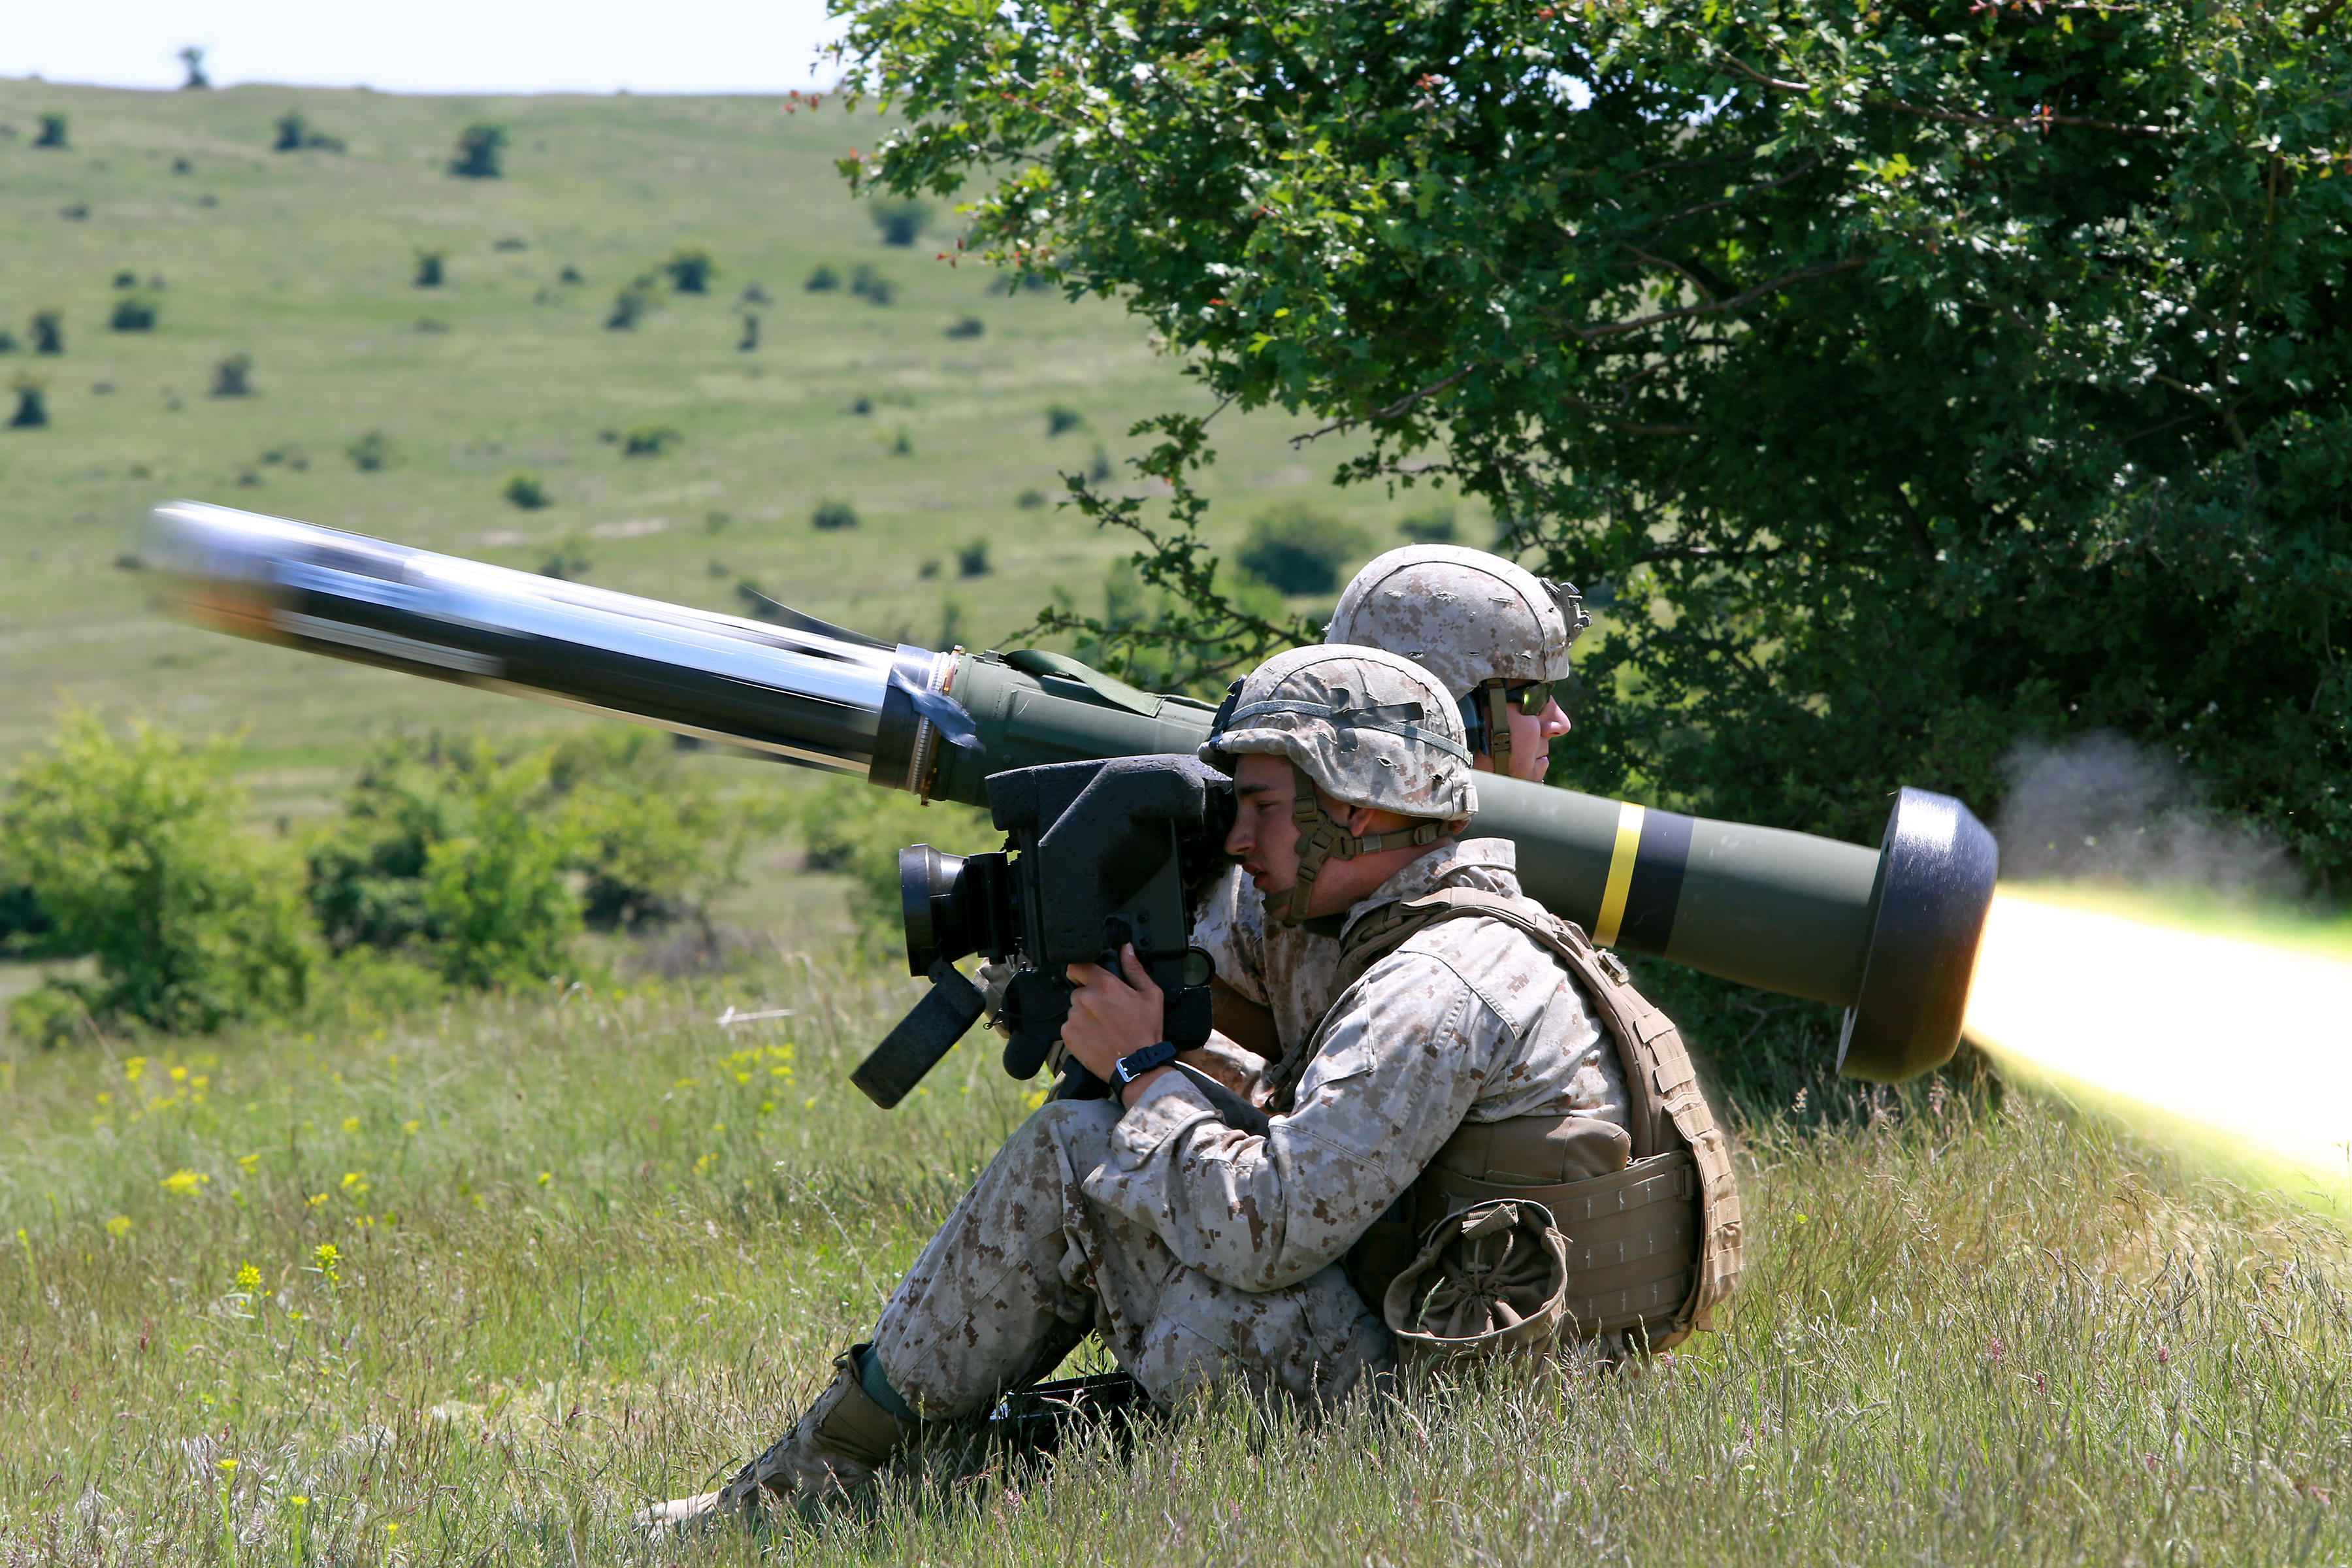 Ukraine officially cleared to buy Javelin weapons